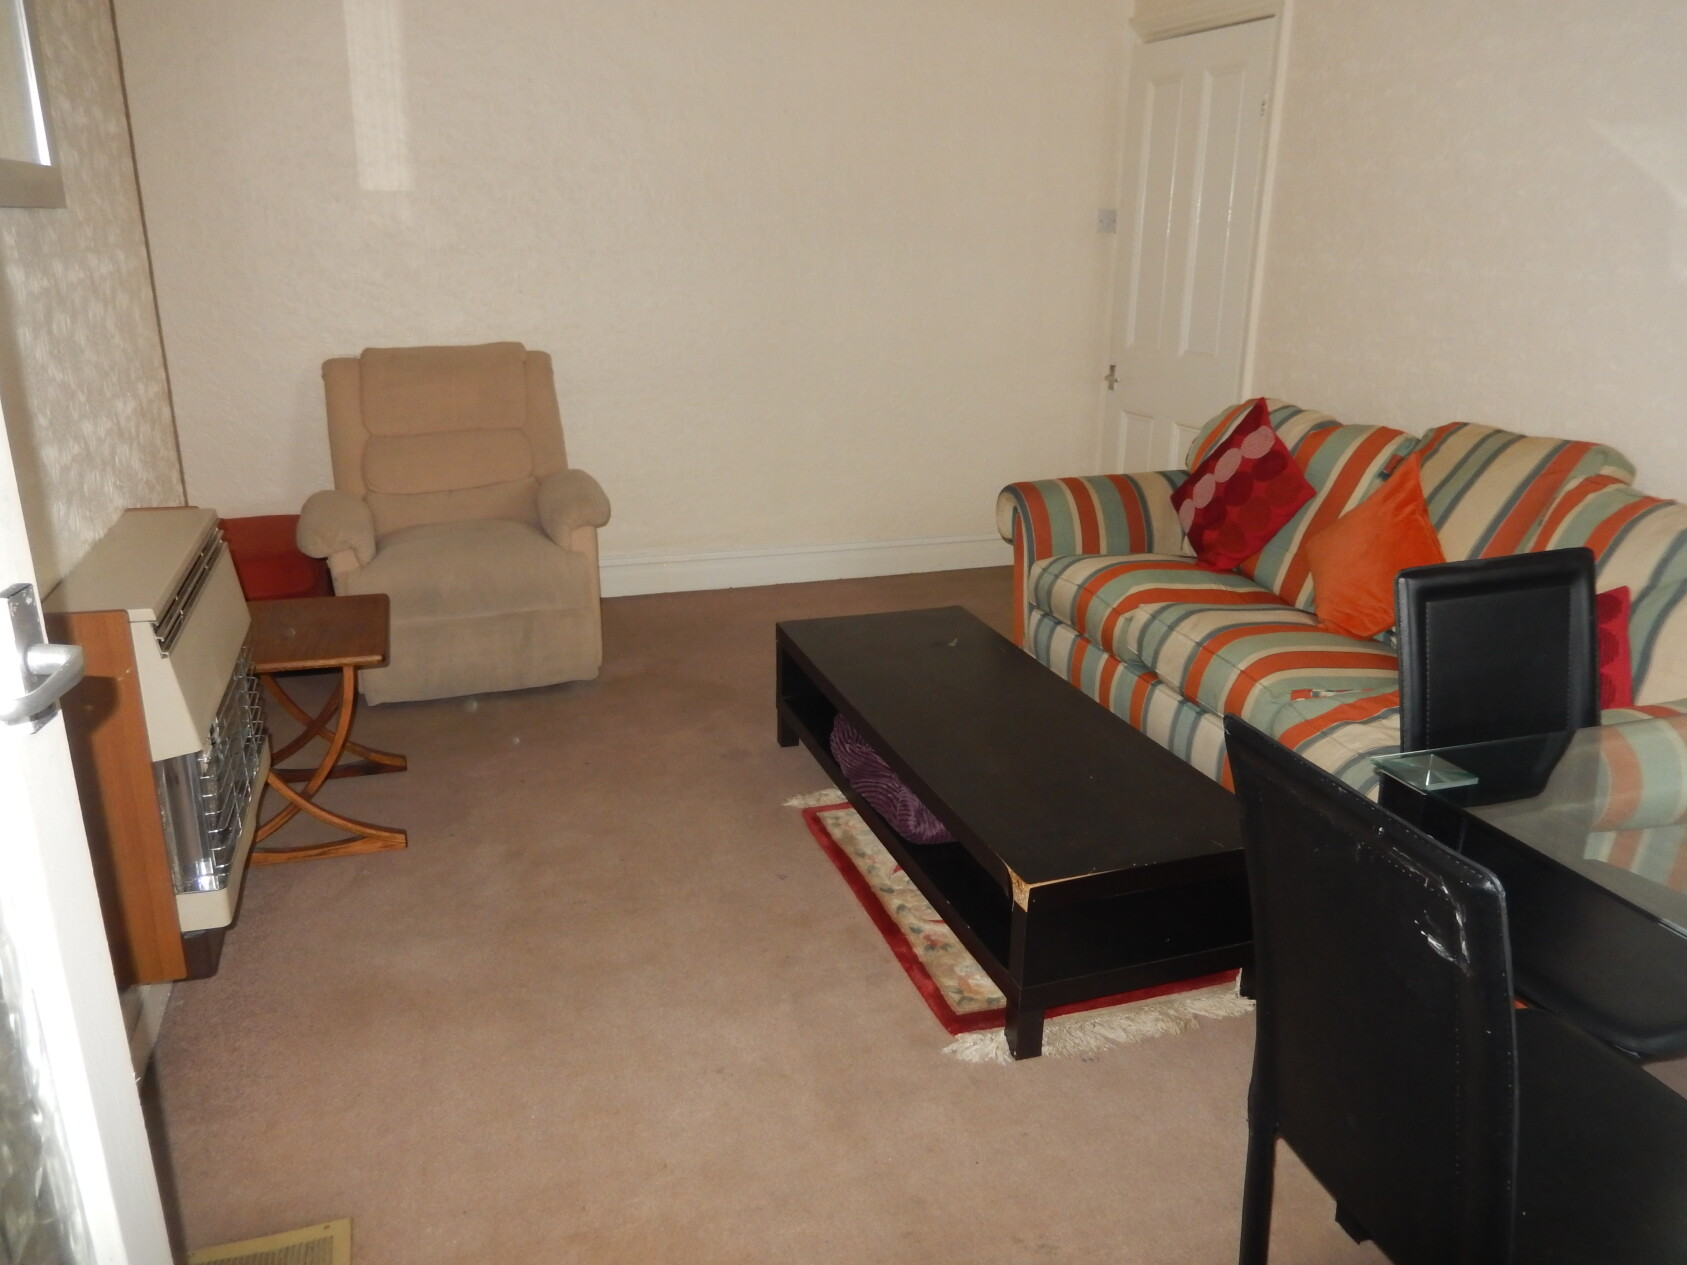 2 bedroom student apartment in Sandyford, Newcastle